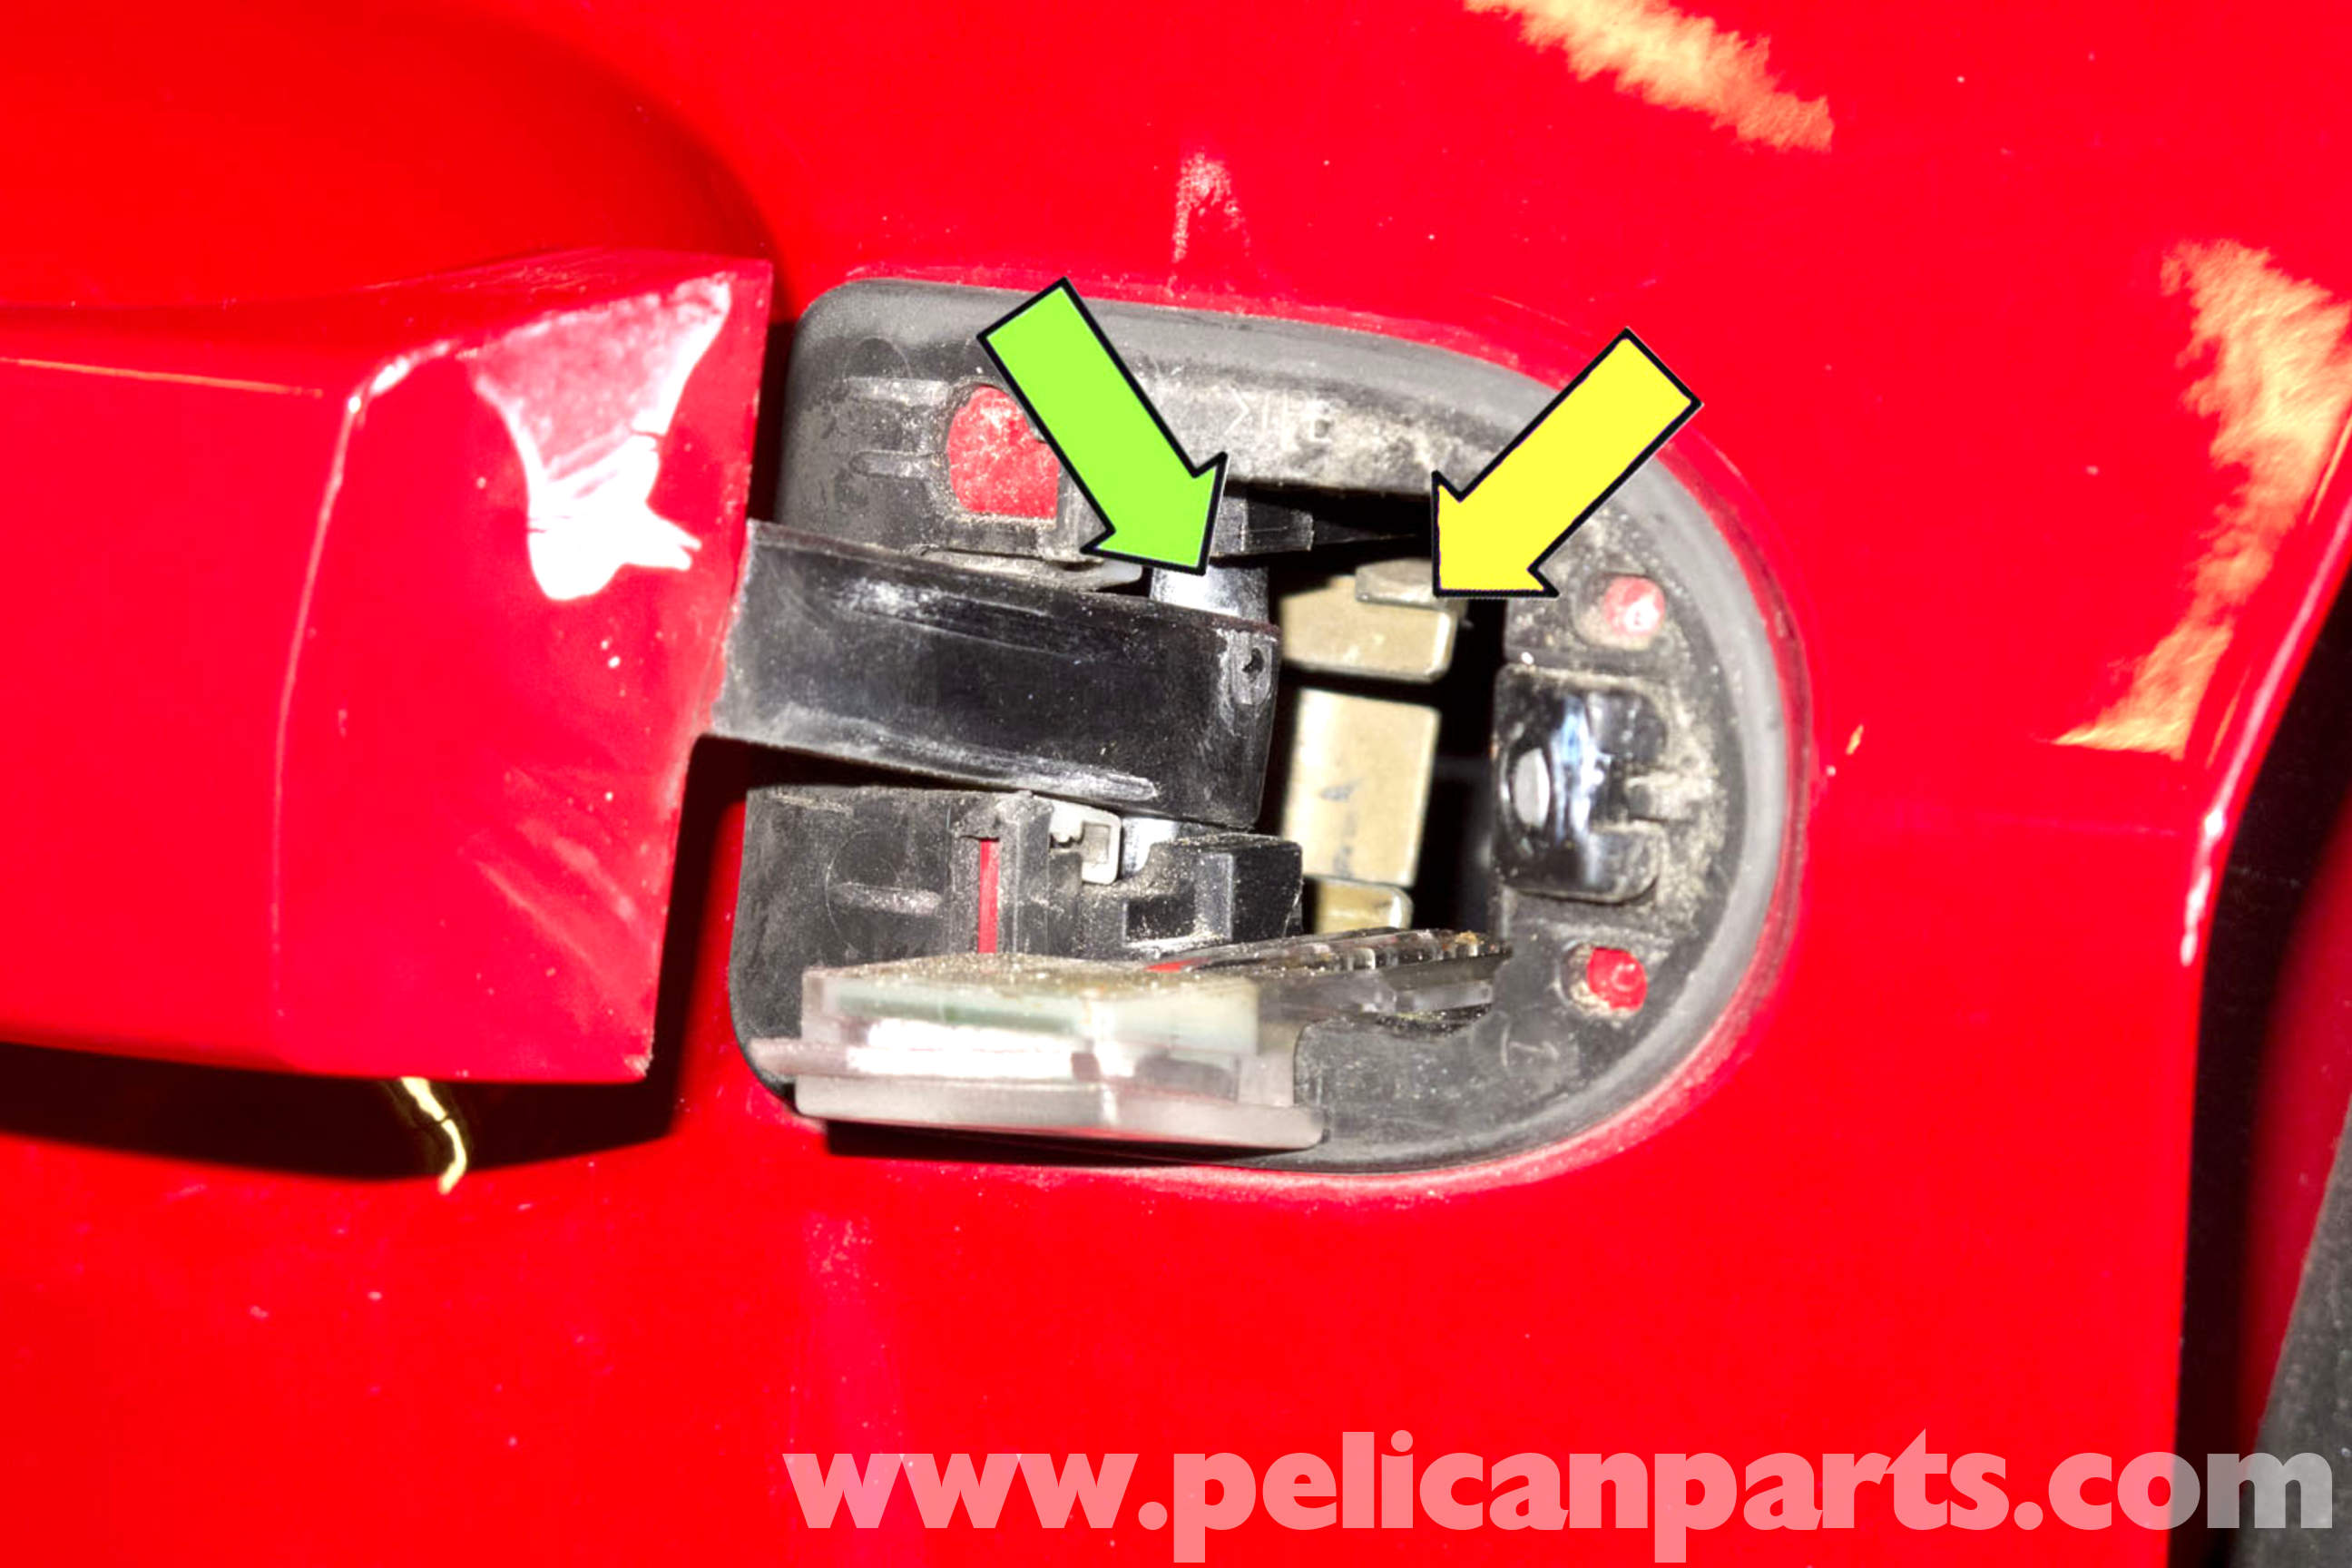 BMW E90 Reverse Light Switch Replacement   E91  E92  E93   Pelican moreover BMW E90 Reverse Light Switch Replacement   E91  E92  E93   Pelican moreover  additionally BMW E90 Tire Pressure Warning Light Reset   E91  E92  E93 moreover BMW E90 Tail Light Replacement   E91  E92  E93   Pelican Parts DIY in addition  besides BMW E90 Headlight Lens Removal and Replacement   E91  E92  E93 also  as well  in addition BMW E90 Rear Upper Control Arm Replacement   E91  E92  E93 furthermore . on bmw e tail light repment pelican parts diy power steering reservoir alternator e93 serpentine belt diagram